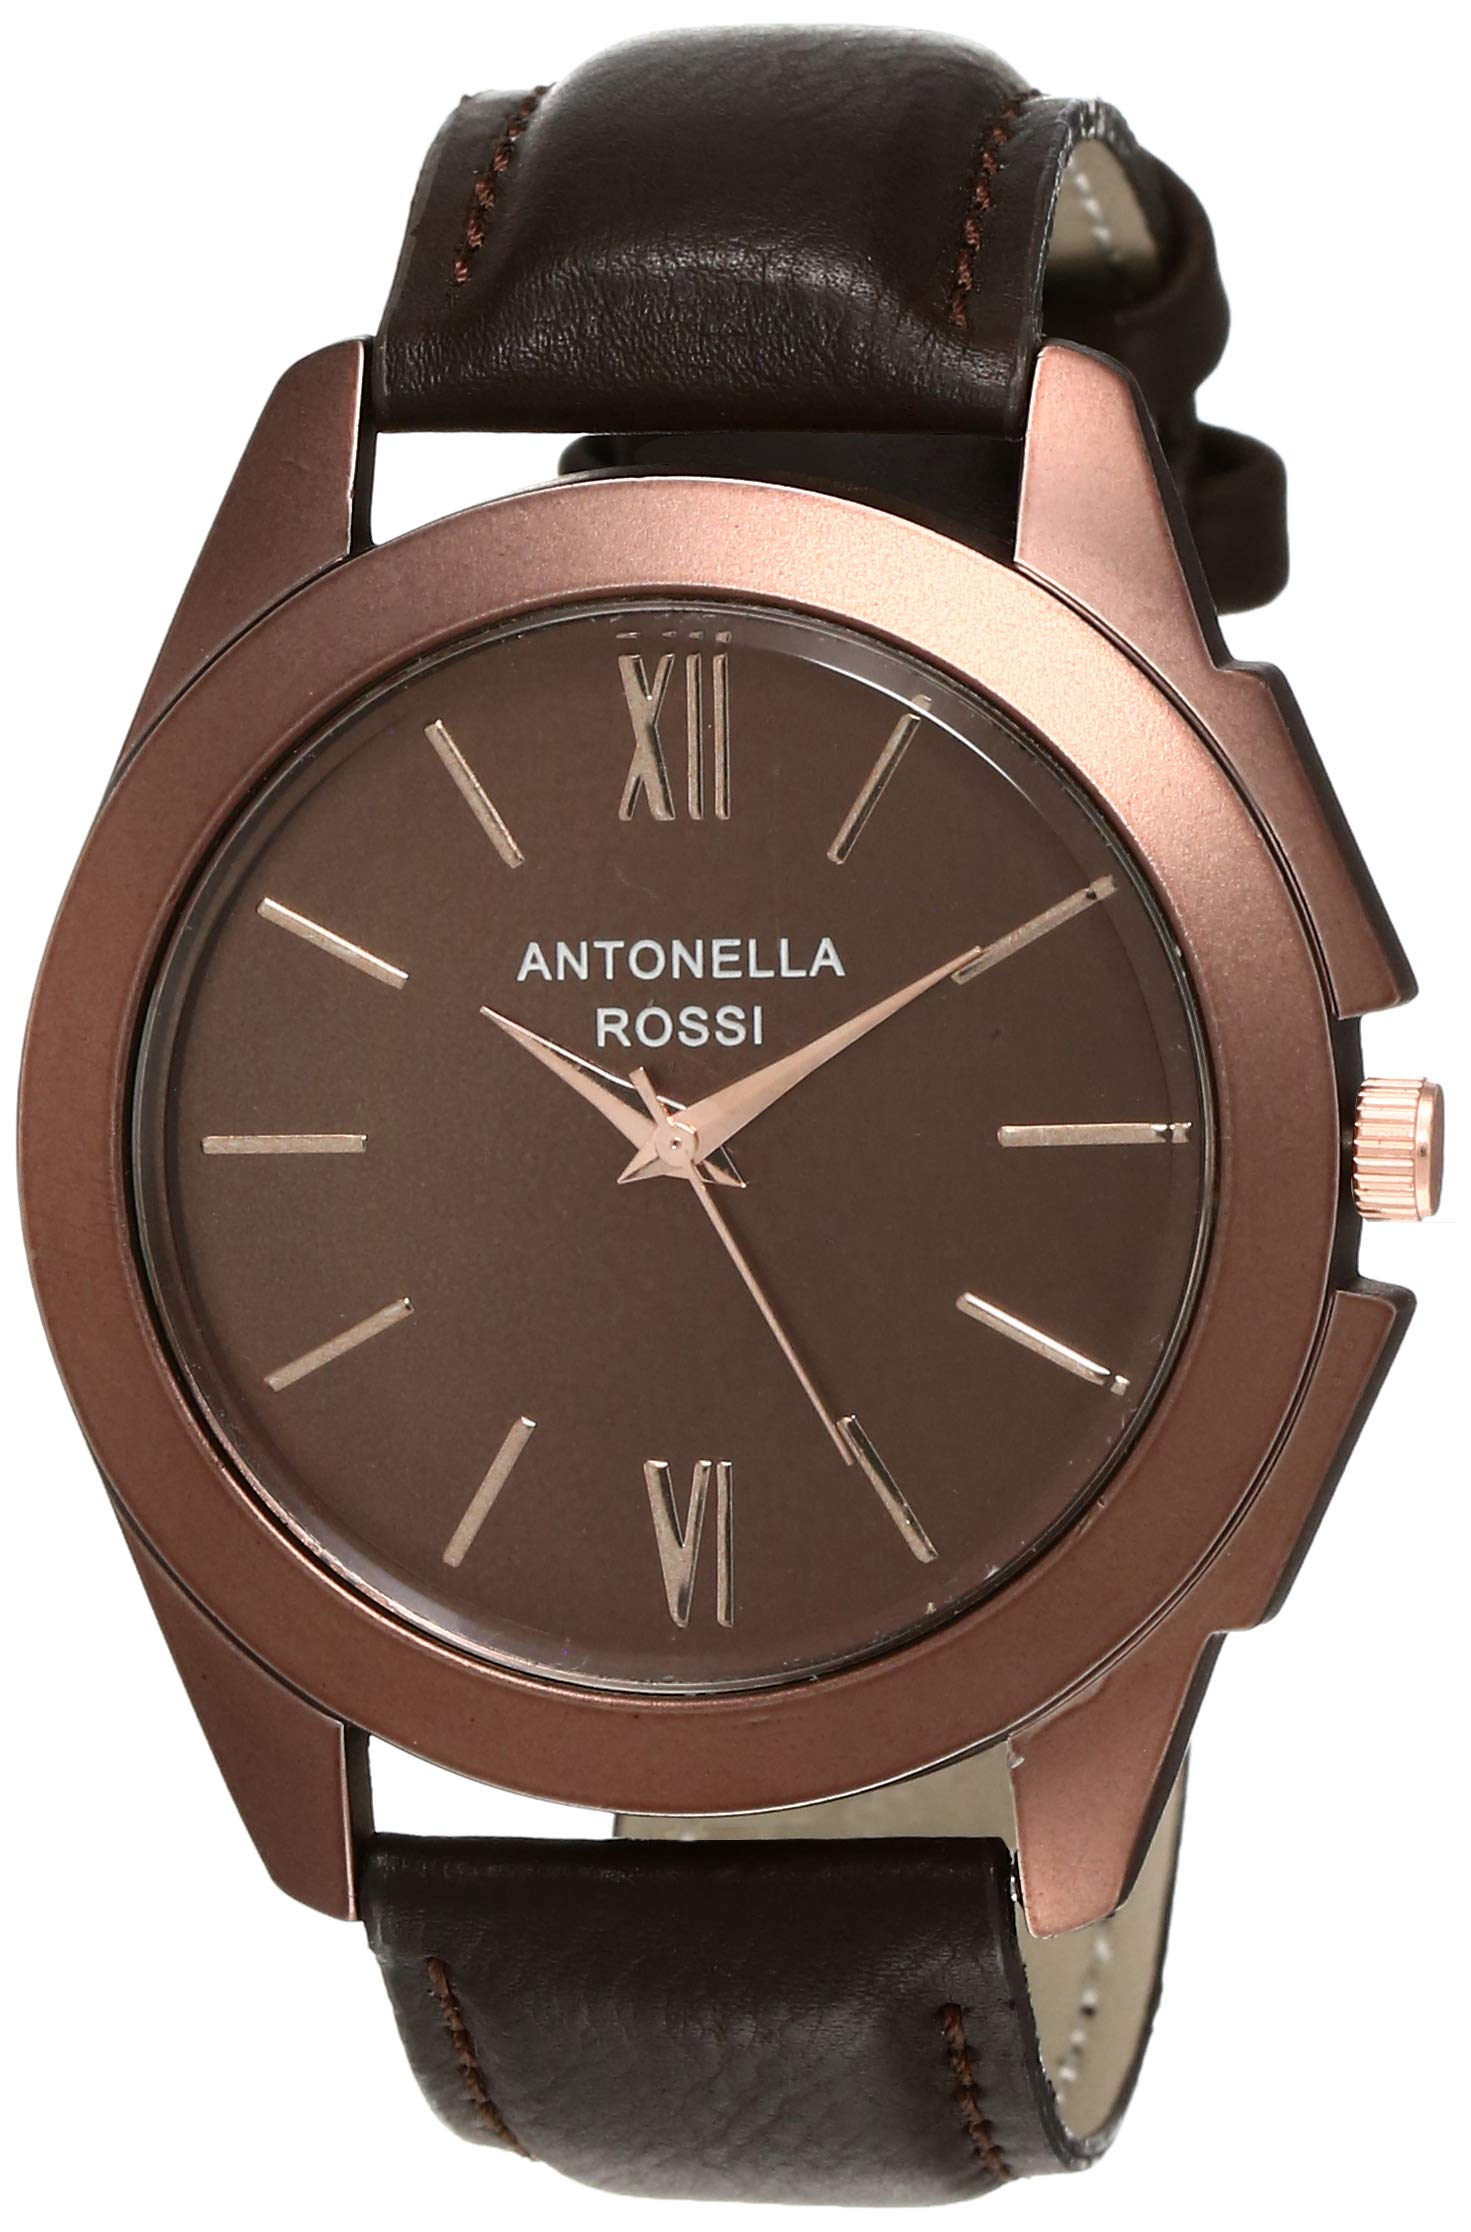 Antonella Rossi Analog Champagne Dial Men's Watch-LB190687 (B07V38G22N) Amazon Price History, Amazon Price Tracker